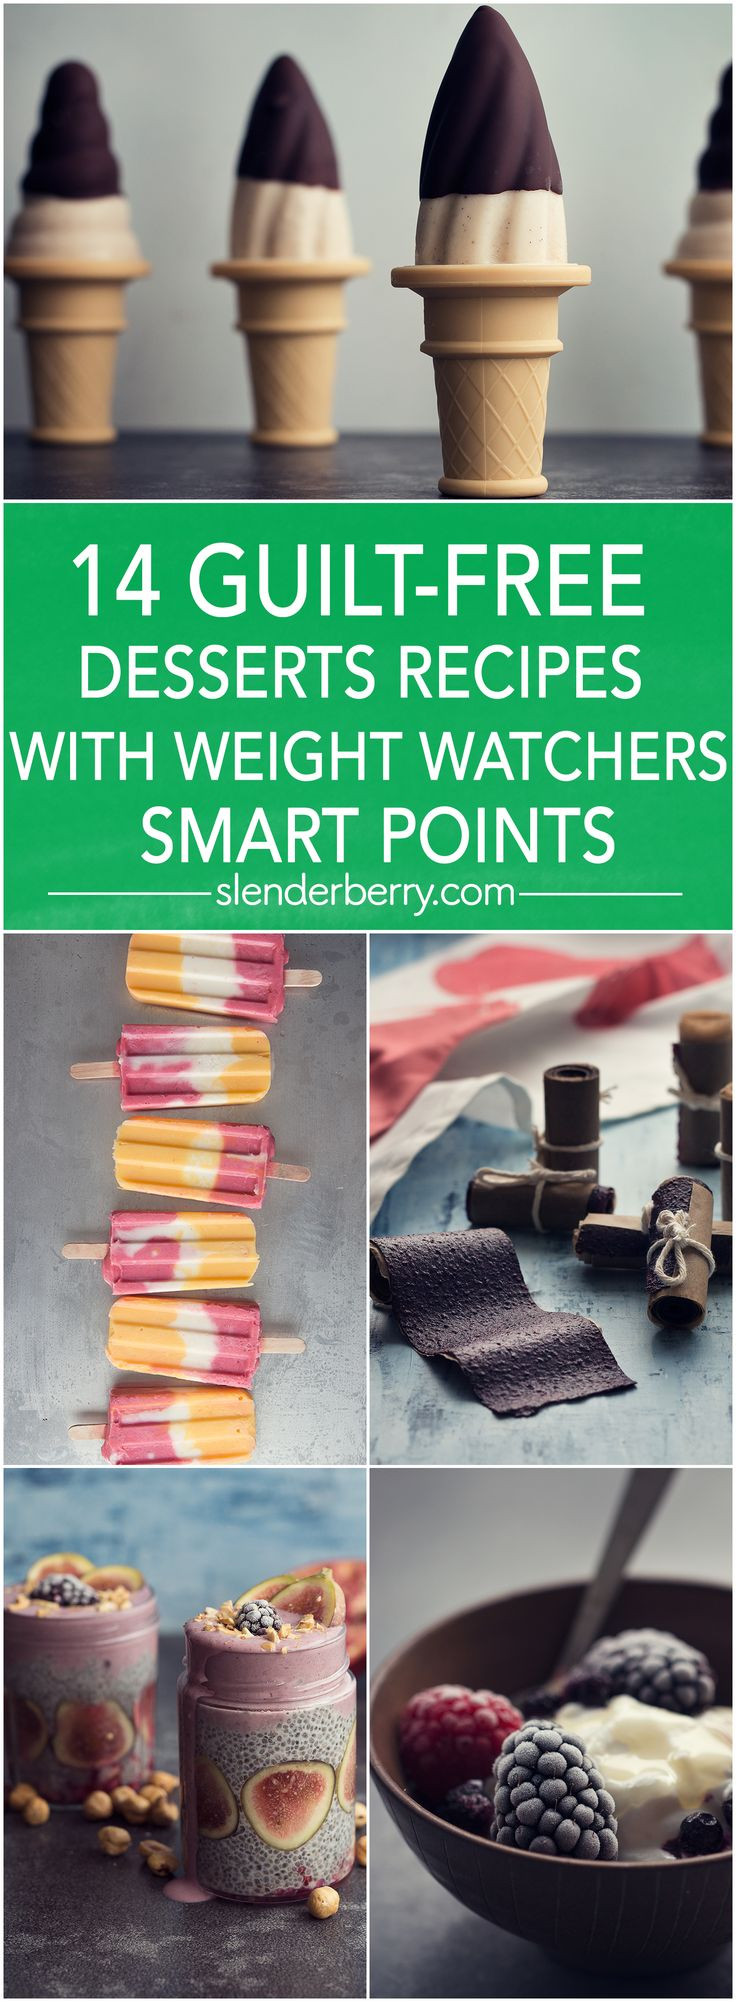 Weight Watchers Desserts Smart Points  best images about Scrumptious Desserts and Sweets